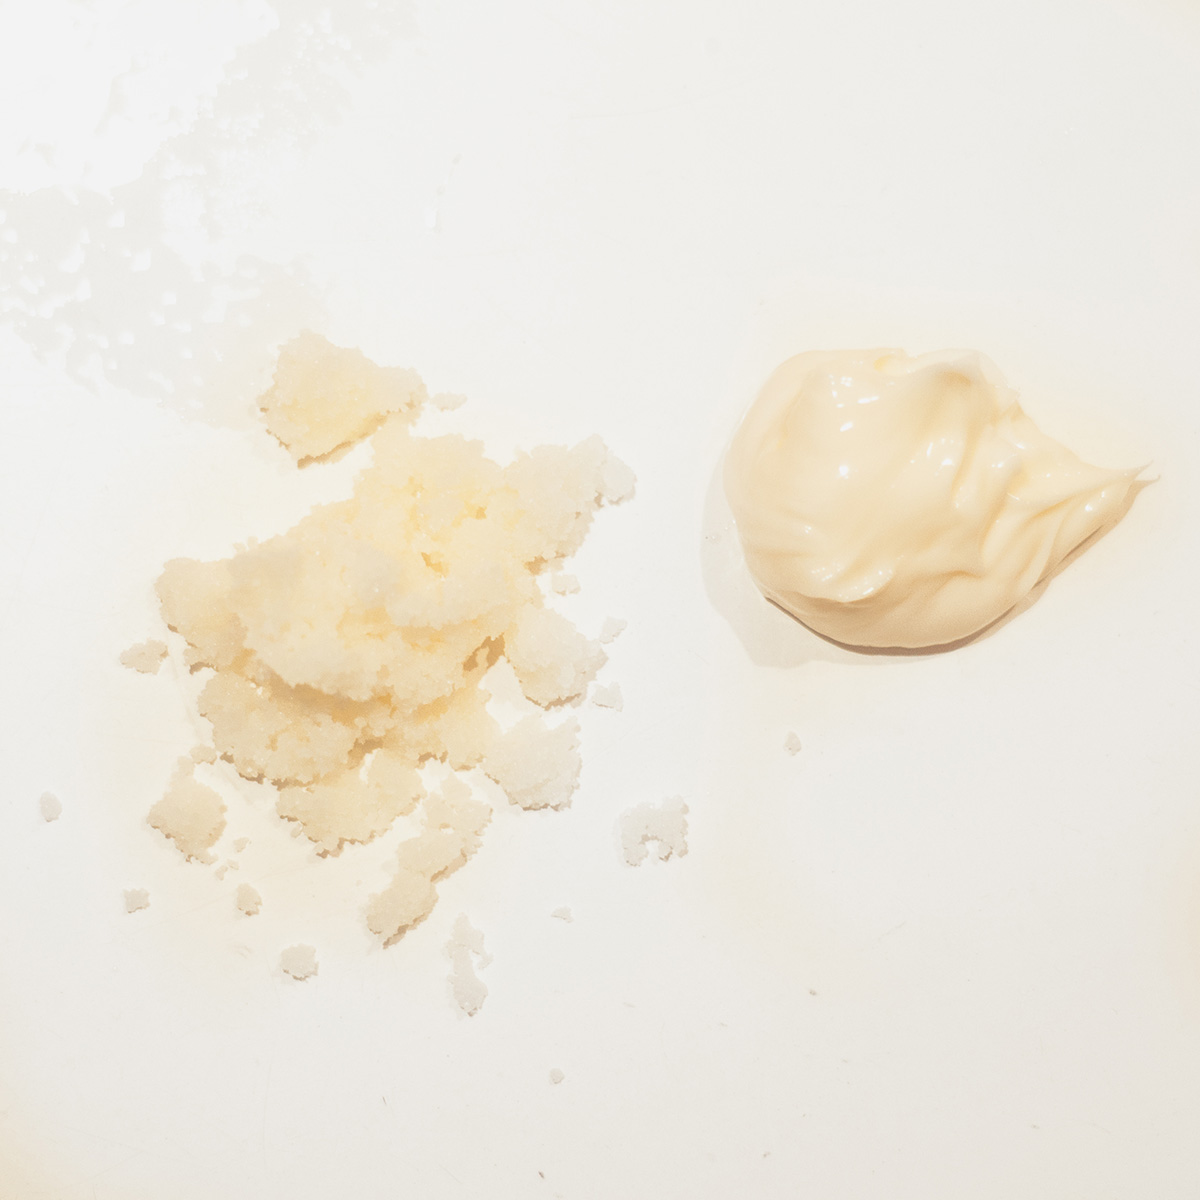 Textures of Ultra Exfoliating Body Treatment and Ultra Rich Mineral Body Butter